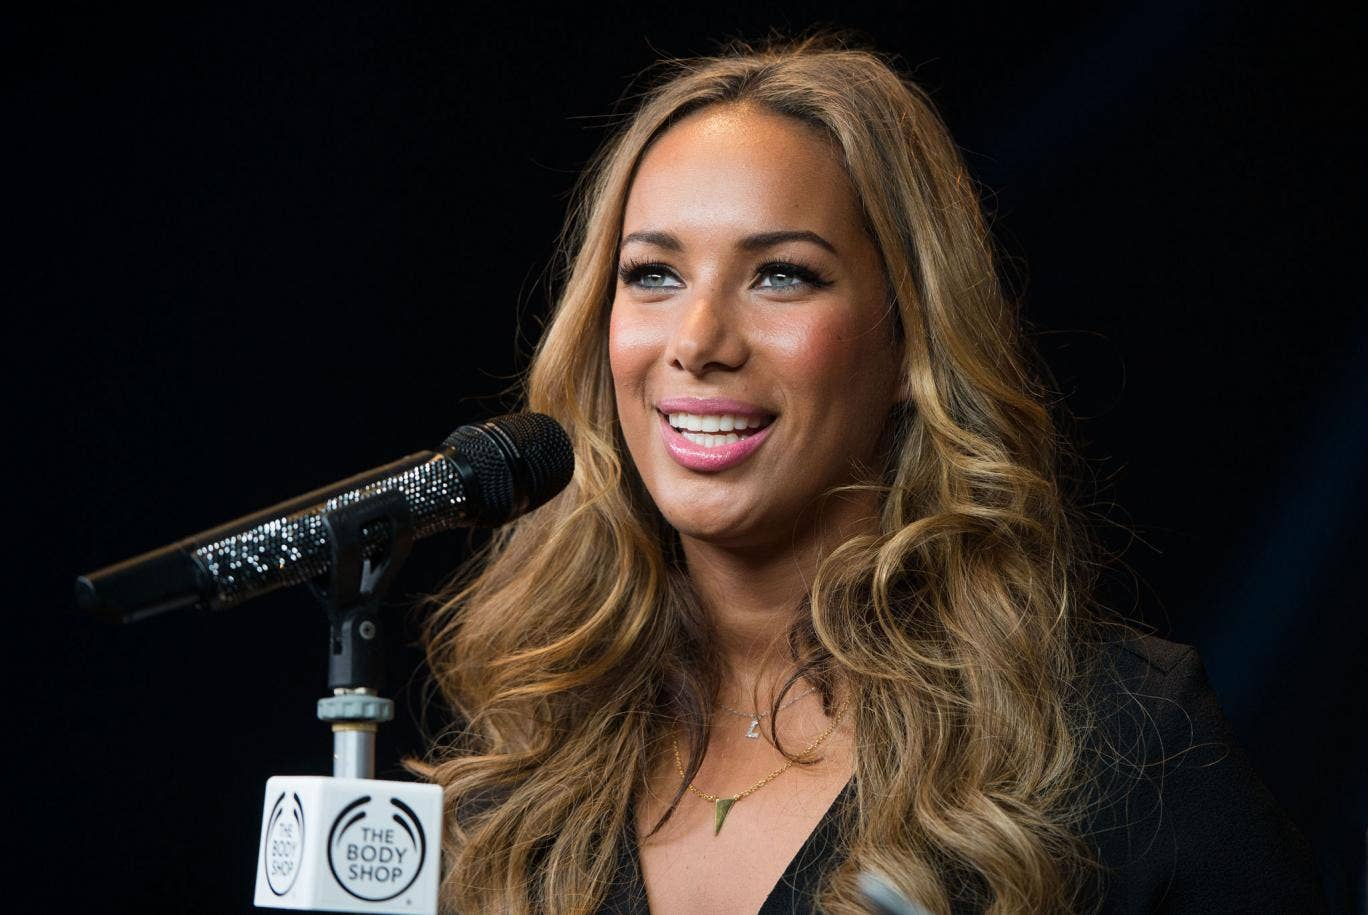 Leona Lewis is moving from music to film